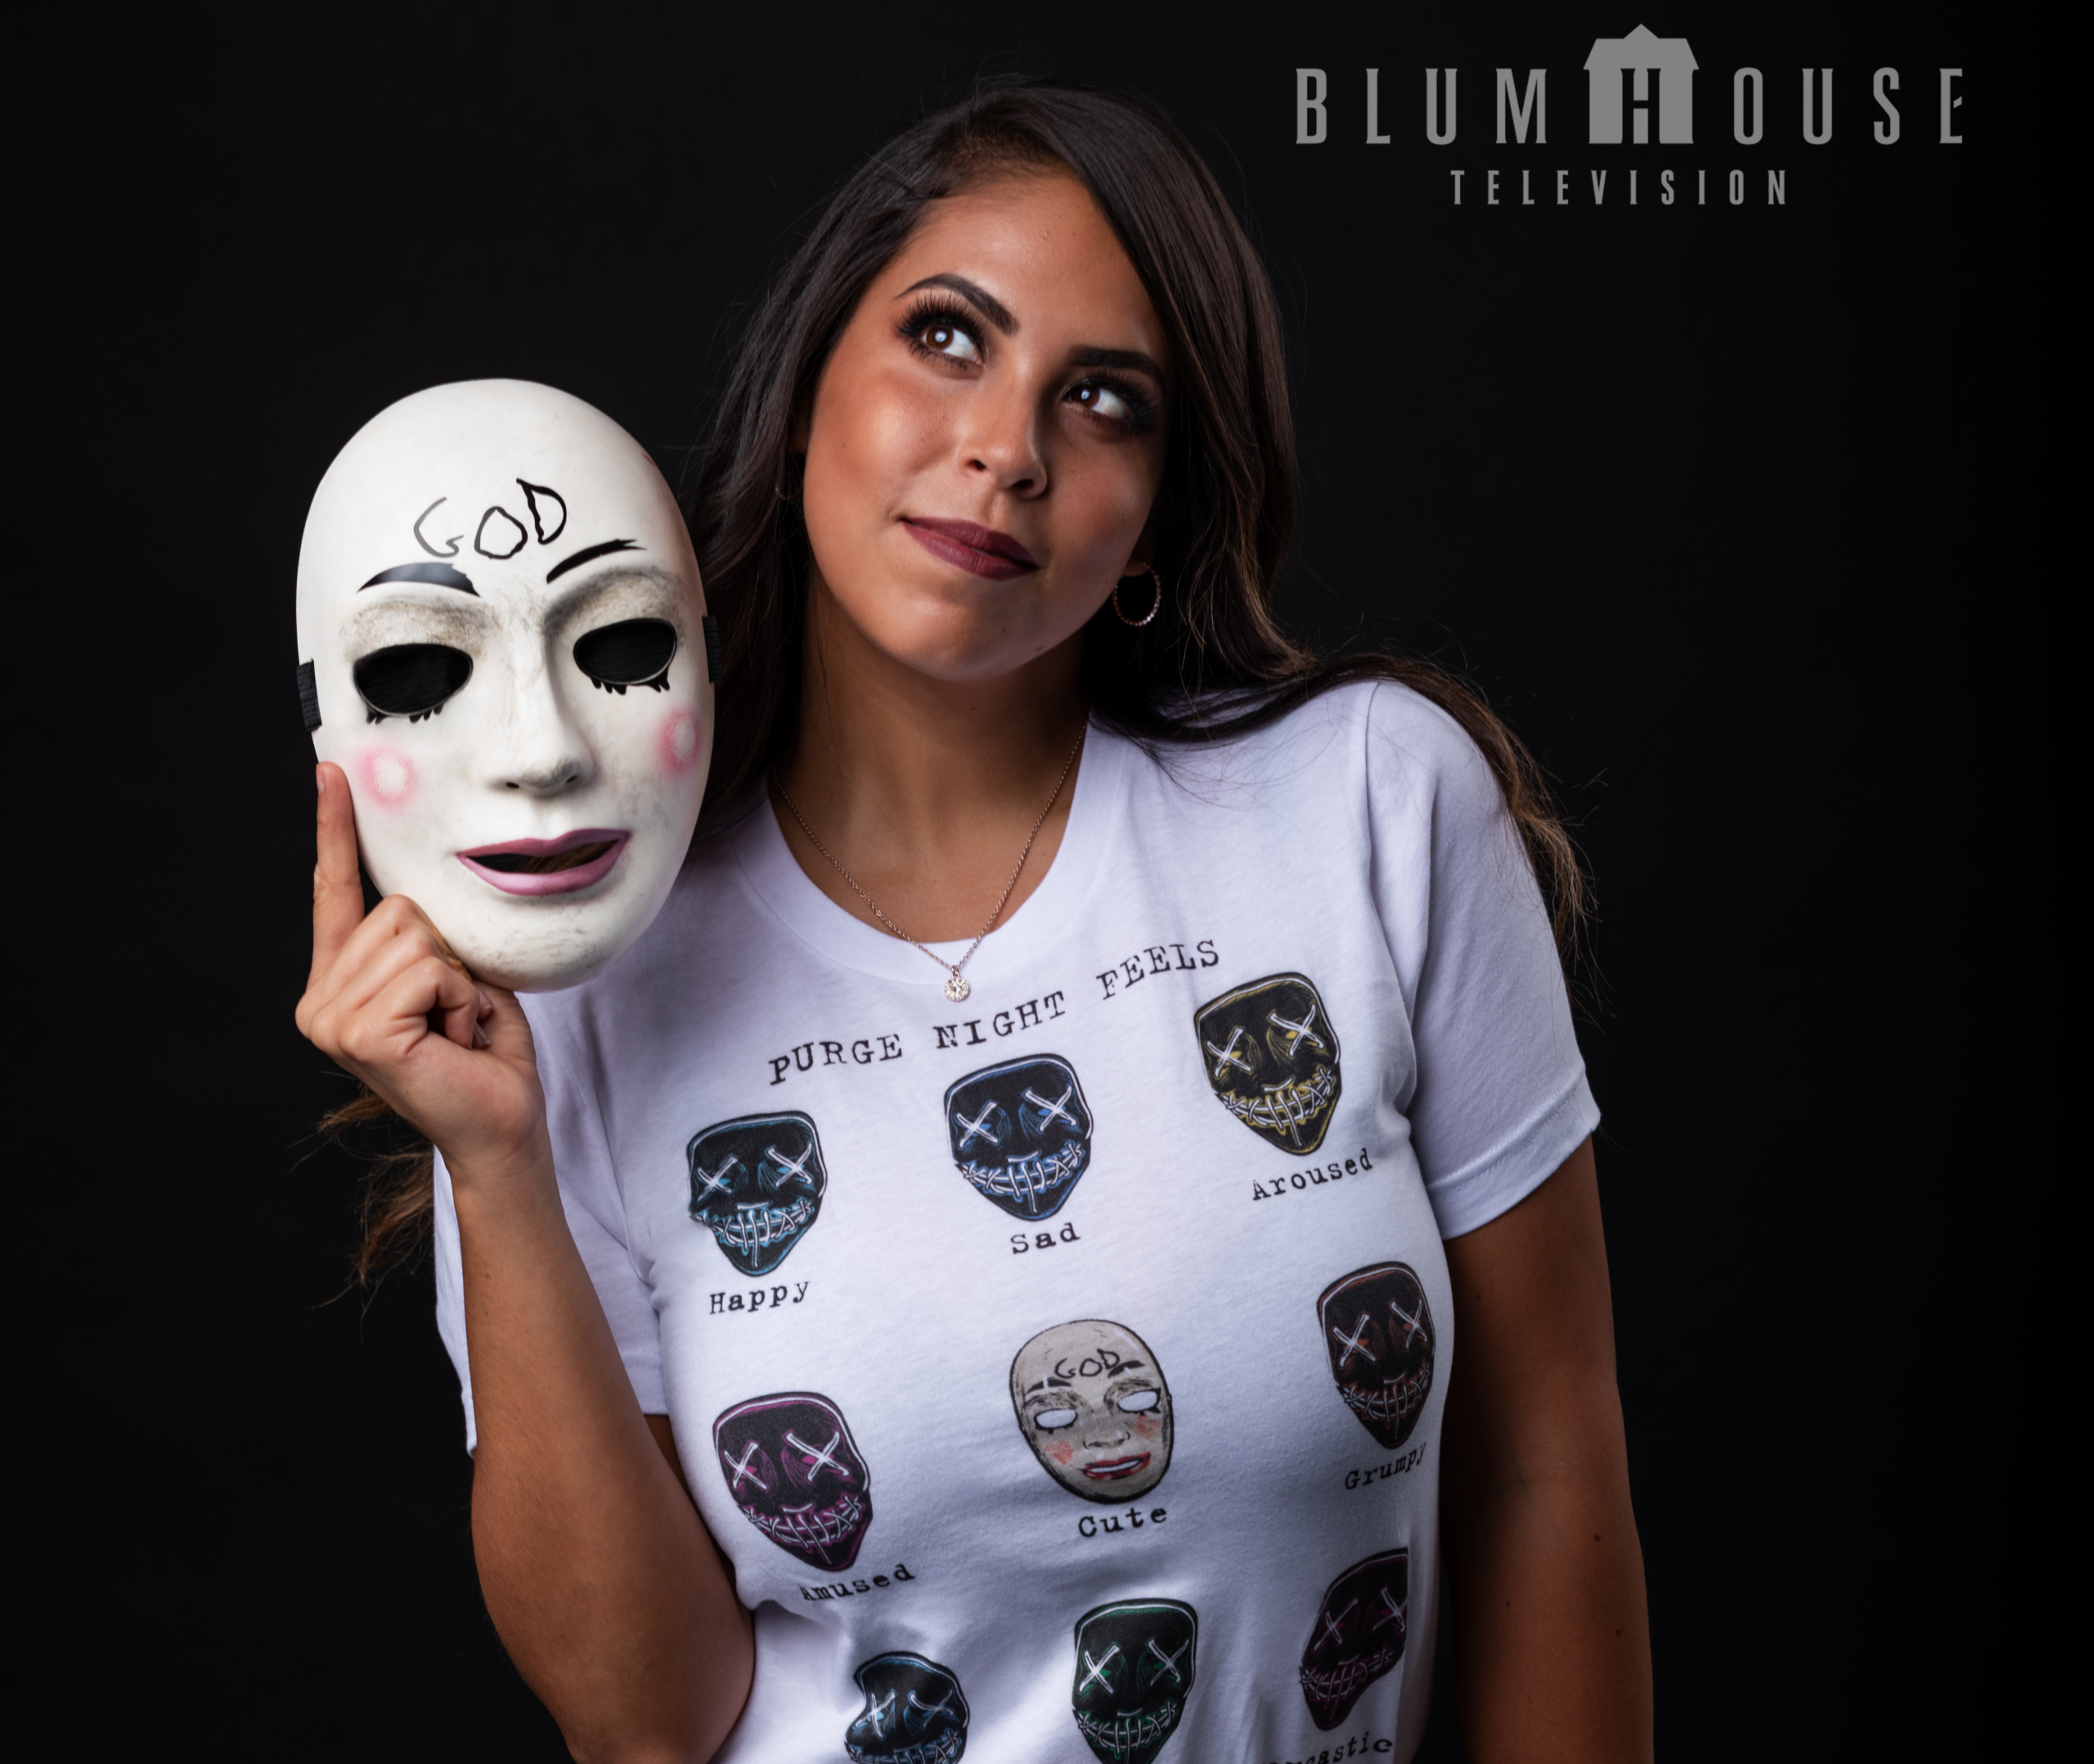 [News] Gigi Saul Guerrero Partners with Blumhouse TV to Release THE PURGE Merchandise